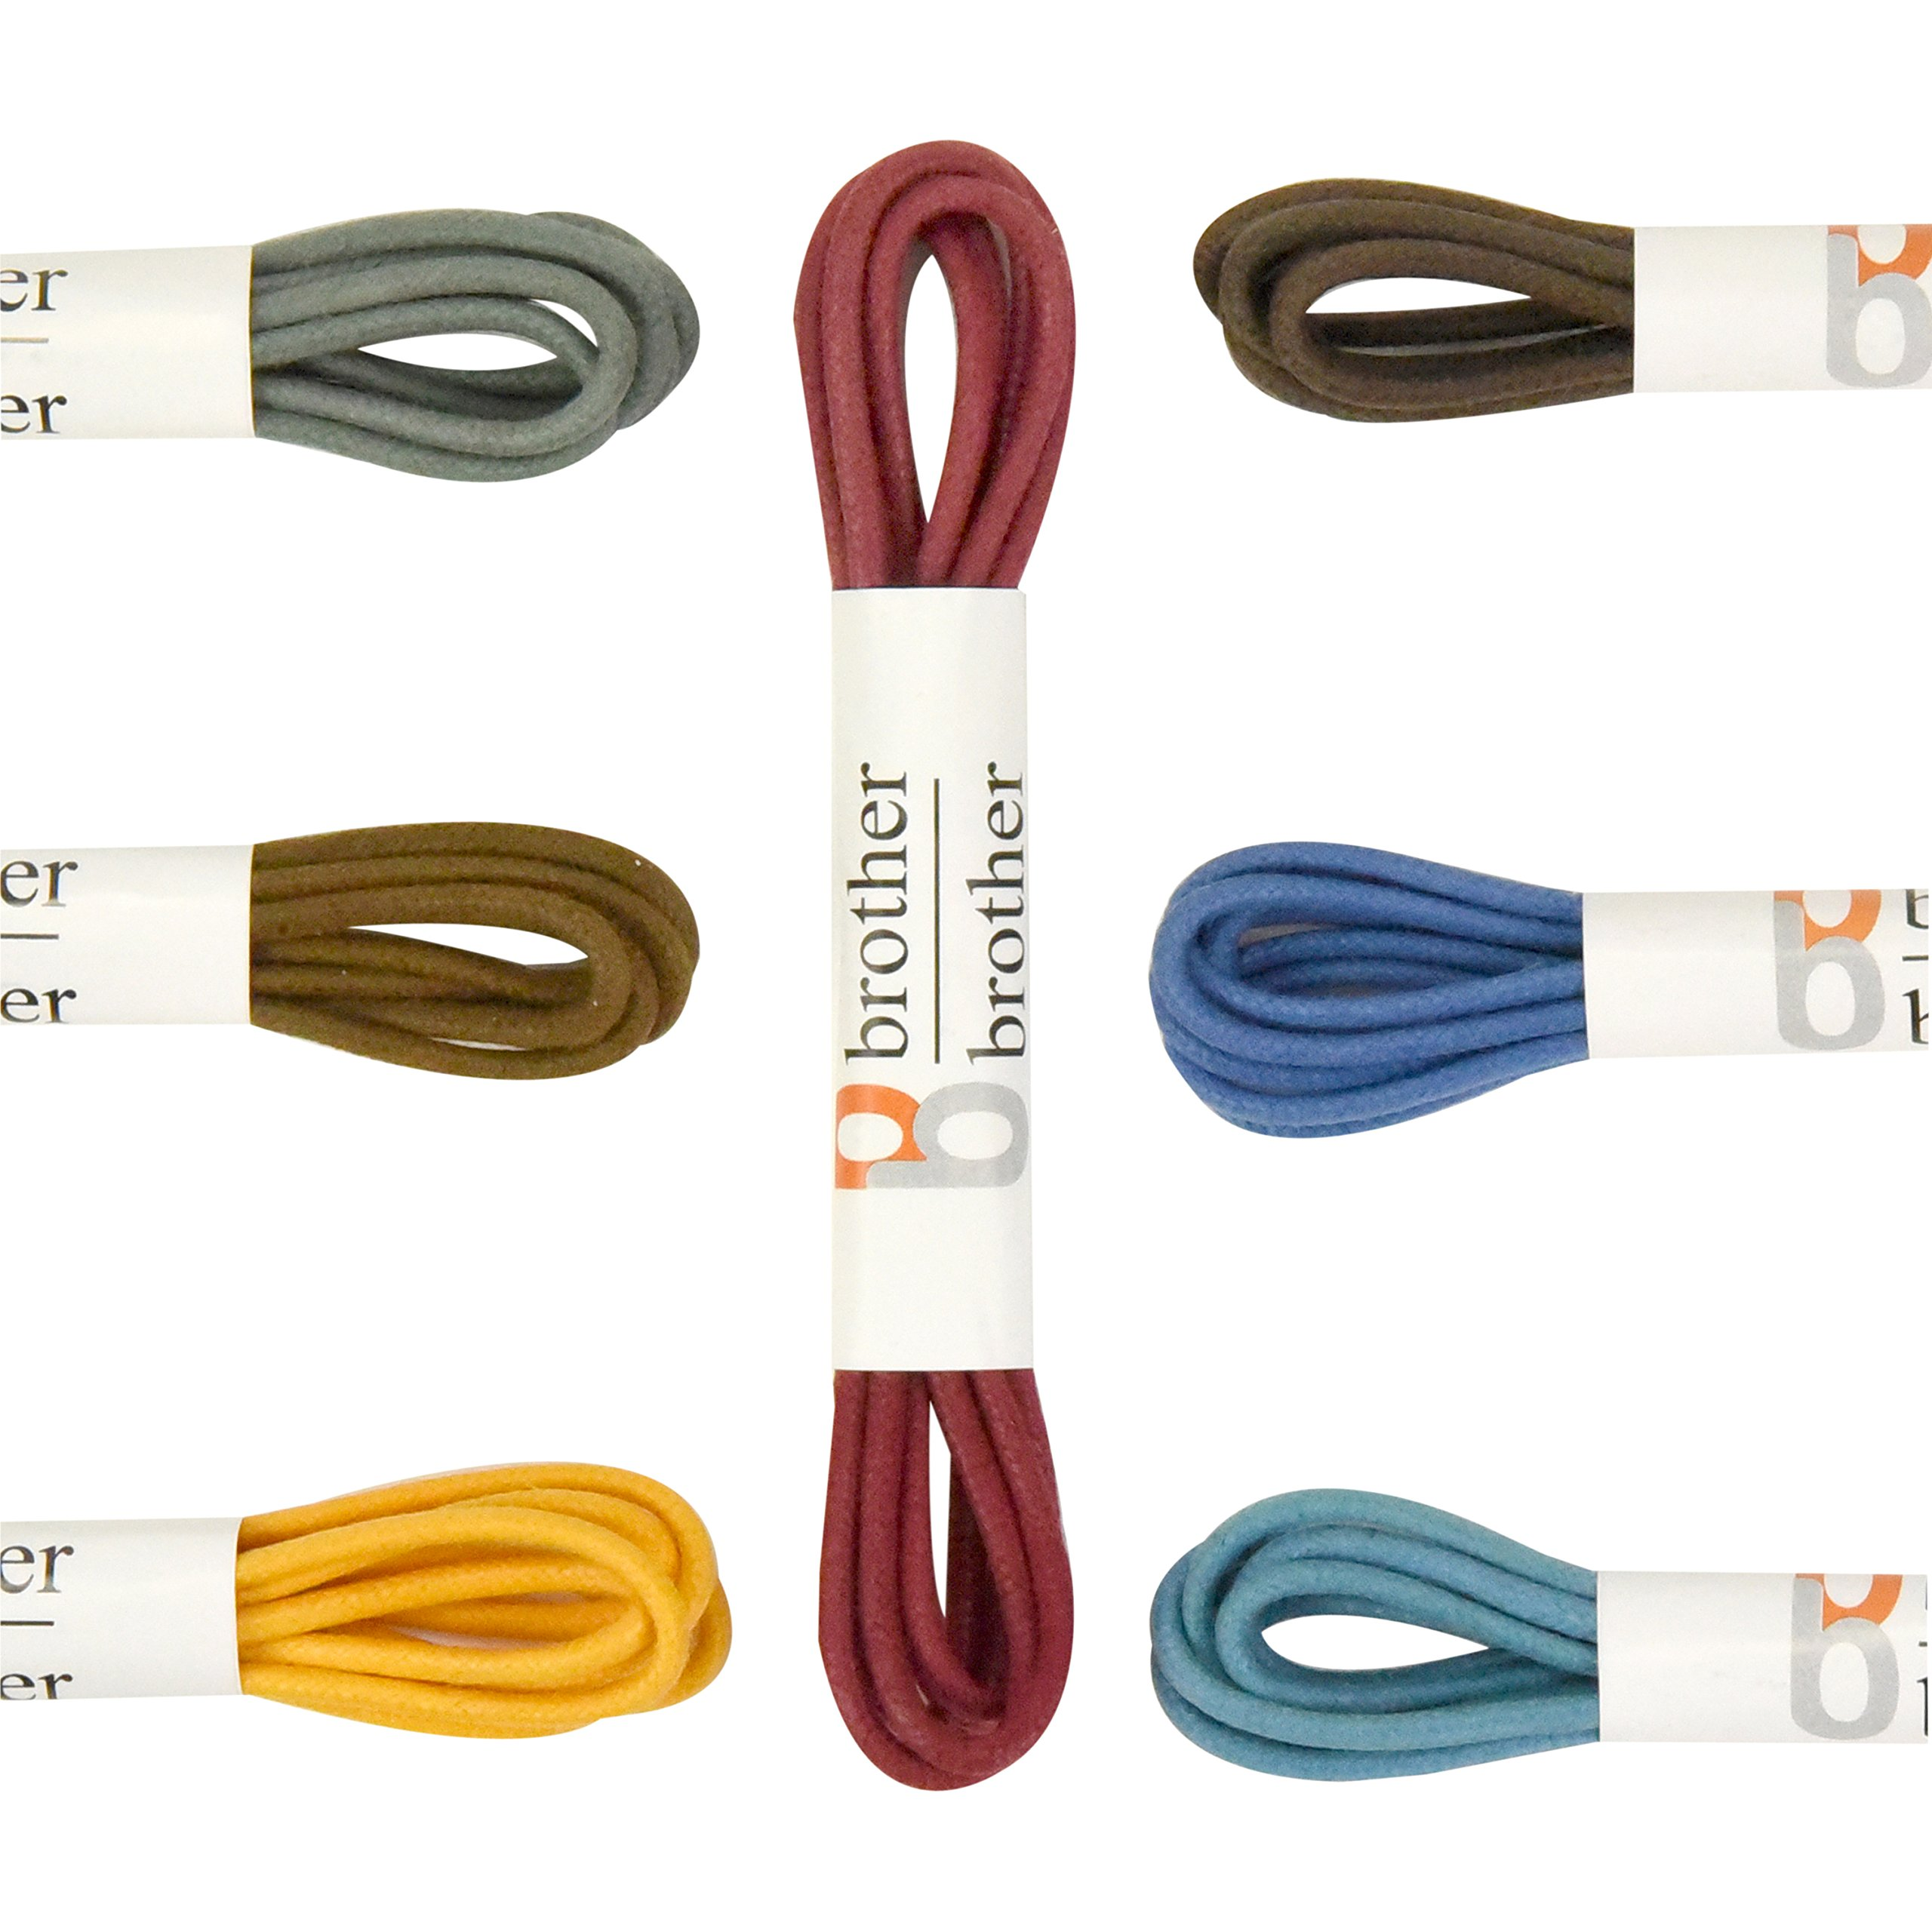 Brother Brother Colored Oxford Shoe Laces for Men (7 Pairs) | 100% Cotton Round and Waxed Shoelaces for Dress Shoes | Gift Box with Brown, Silky Violet, Burgundy, Mustard, Blue, Light Blue, Chocolate by brother brother (Image #5)